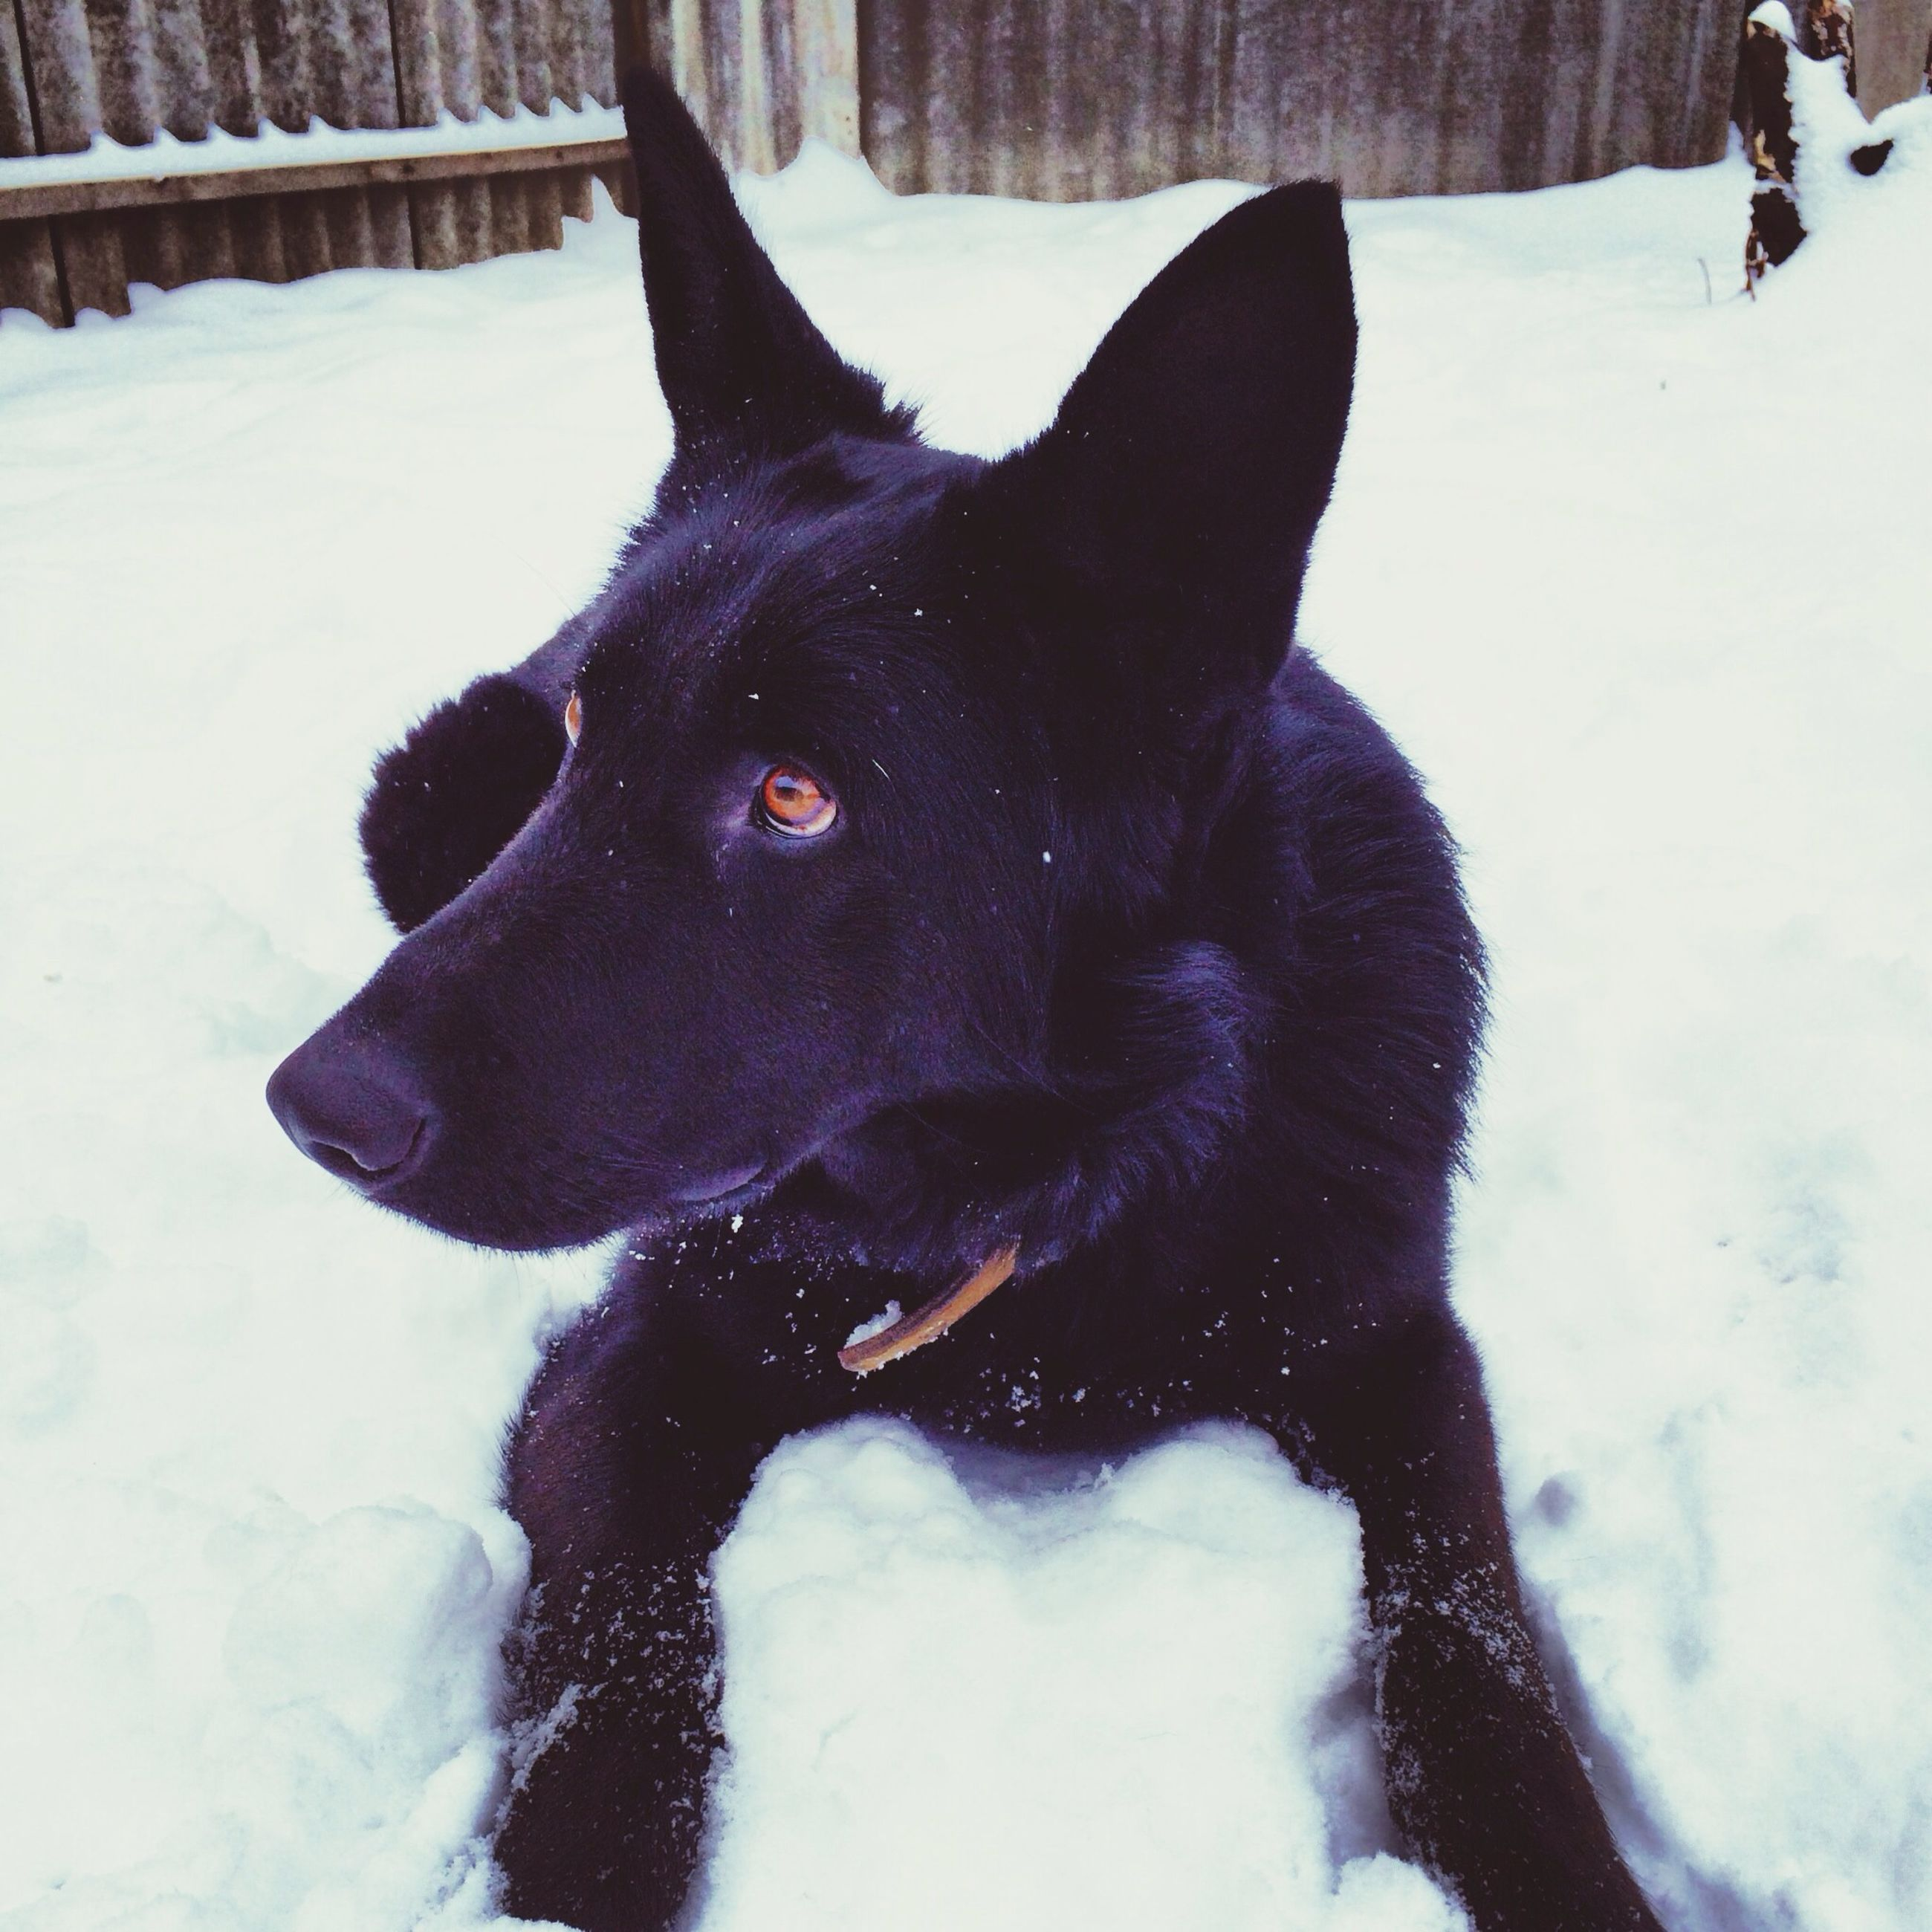 snow, winter, cold temperature, domestic animals, pets, dog, season, mammal, animal themes, weather, one animal, covering, white color, field, black color, frozen, nature, covered, day, outdoors